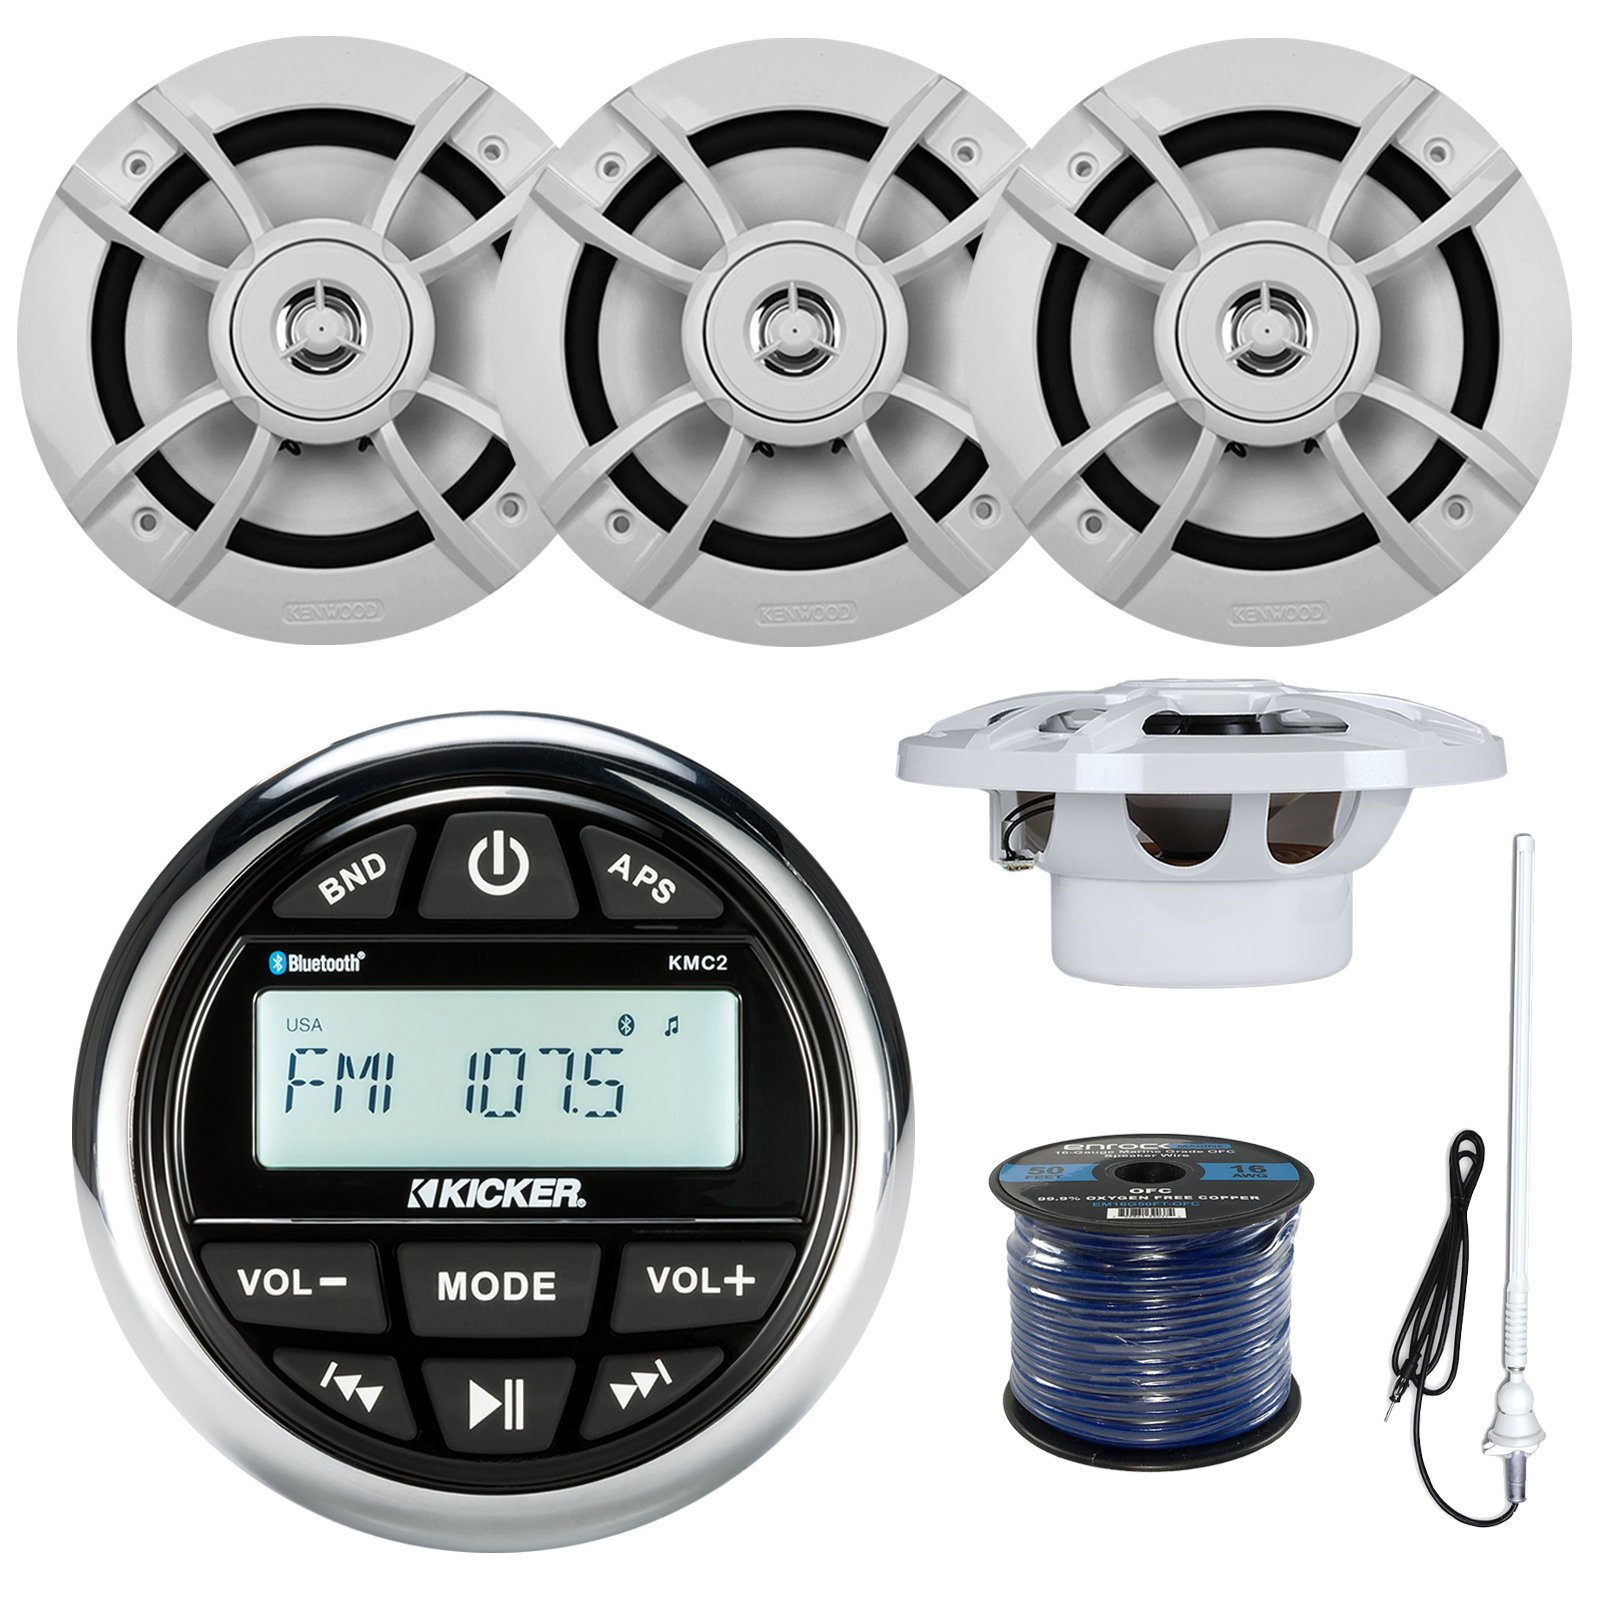 Kicker KMC2 Marine Boat Yacht Gauge Style AM/FM Radio Stereo Receiver Bundle Combo With 4x Kenwood 6.5-Inch 100 Watt Speaker + Enrock Radio Antenna + 50 Feet Speaker Wire